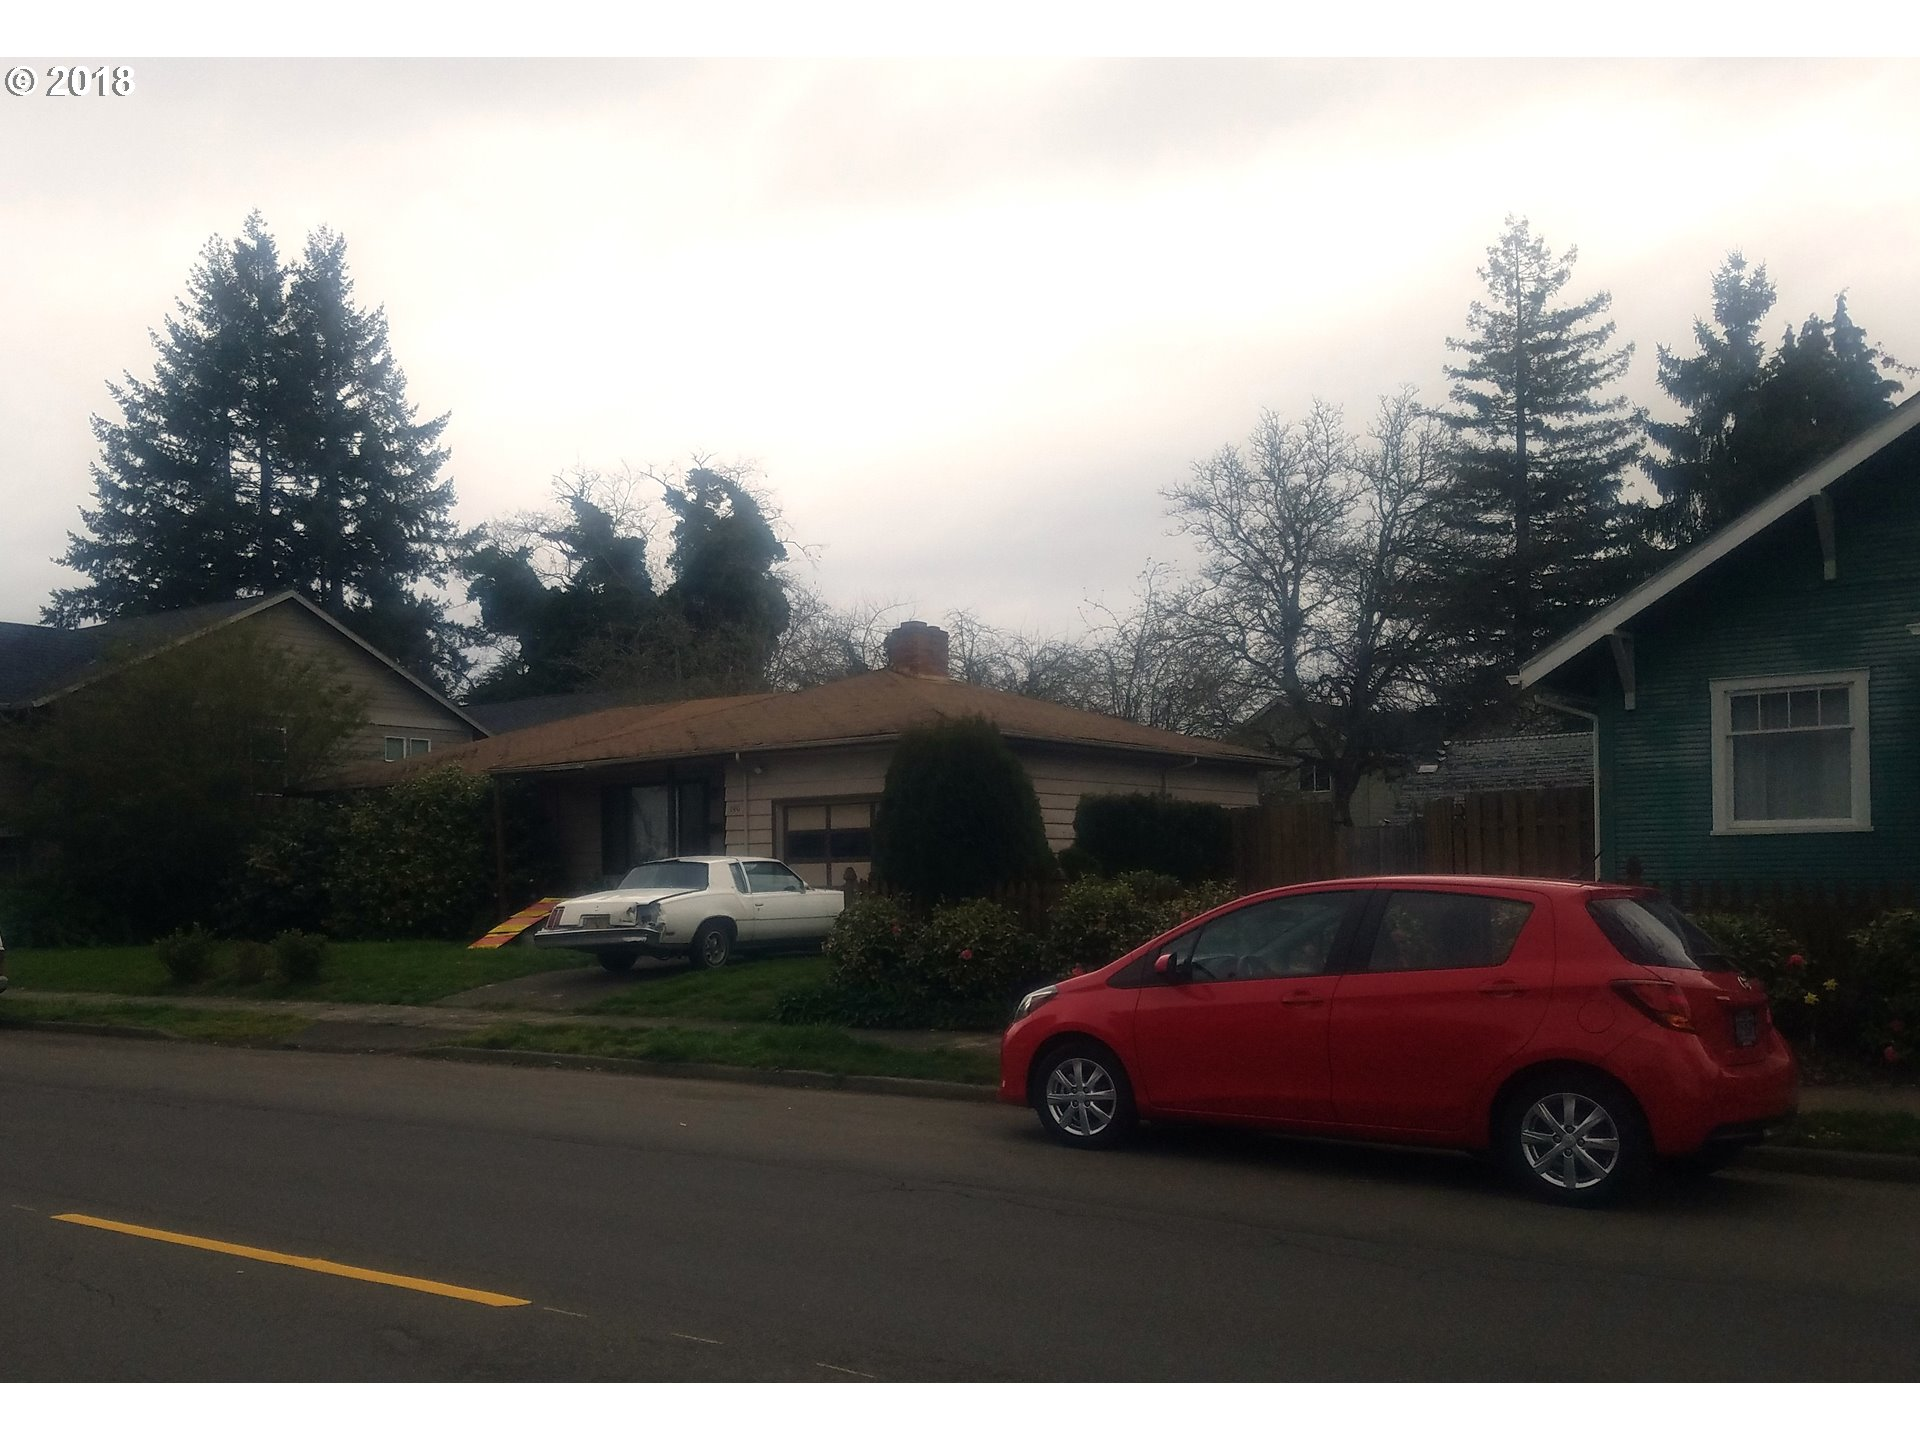 140 NW CONNELL AVE, Hillsboro, OR 97124